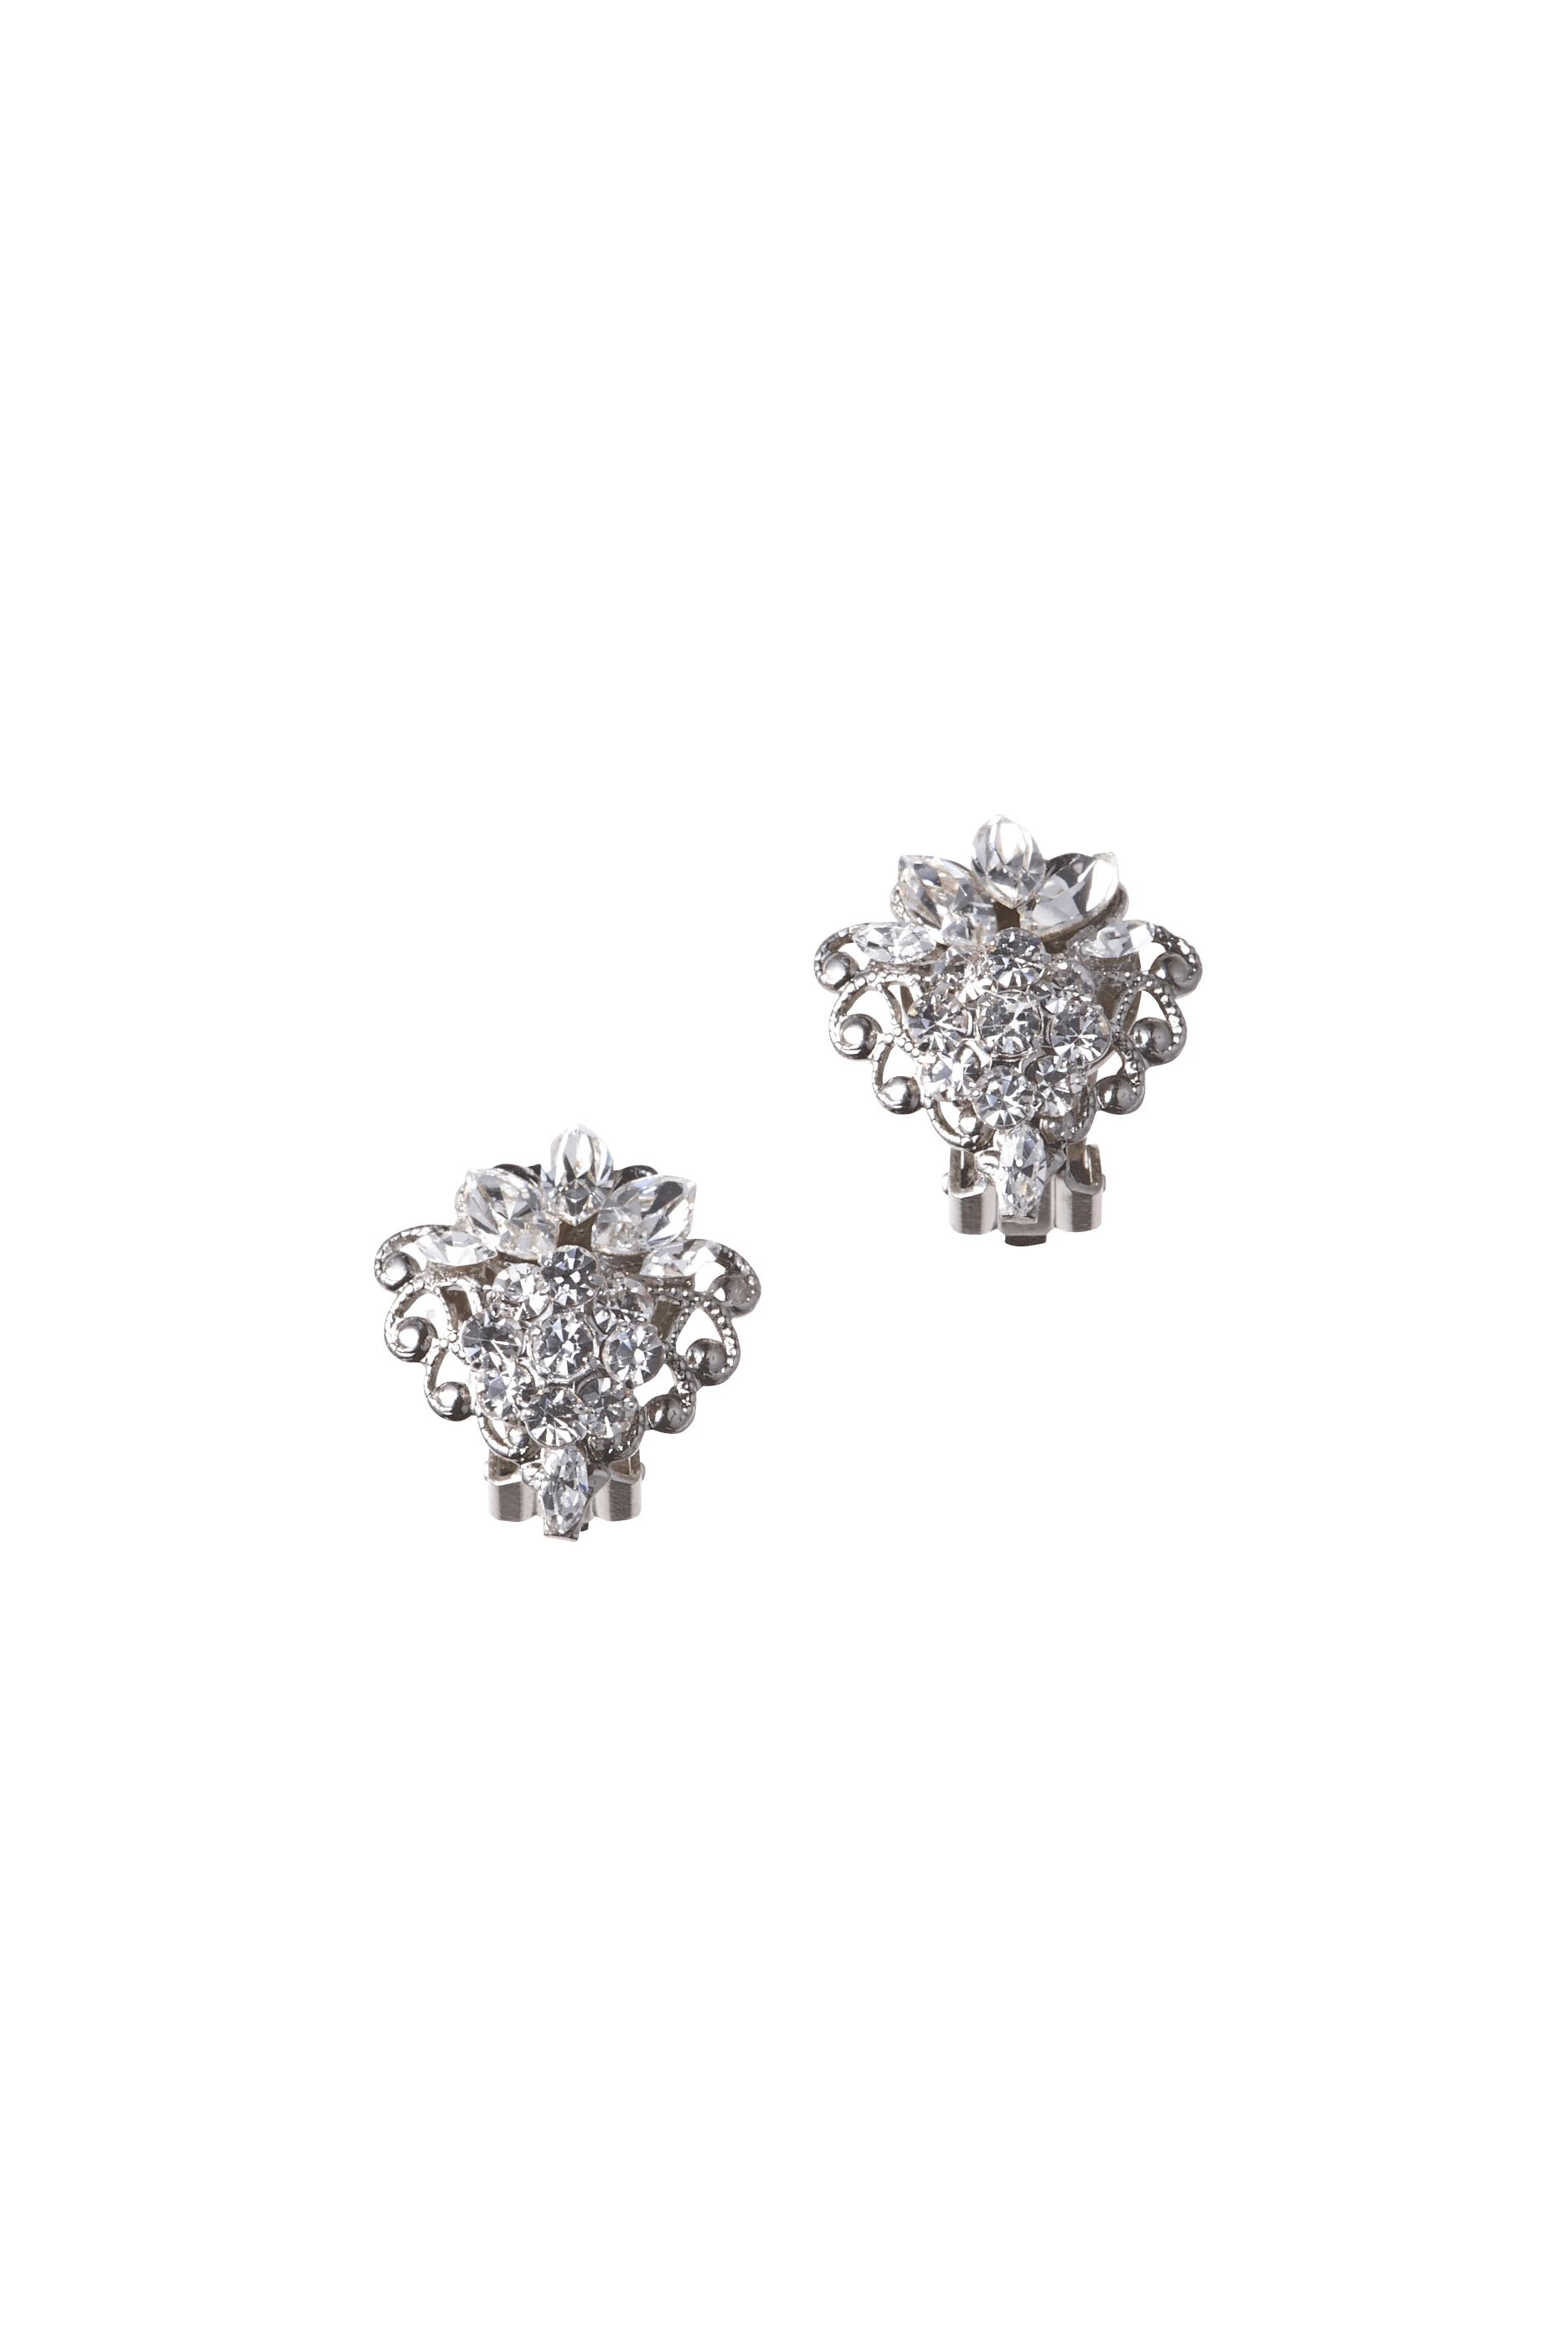 [RENTAL][Tino Earrings]by MariaElena